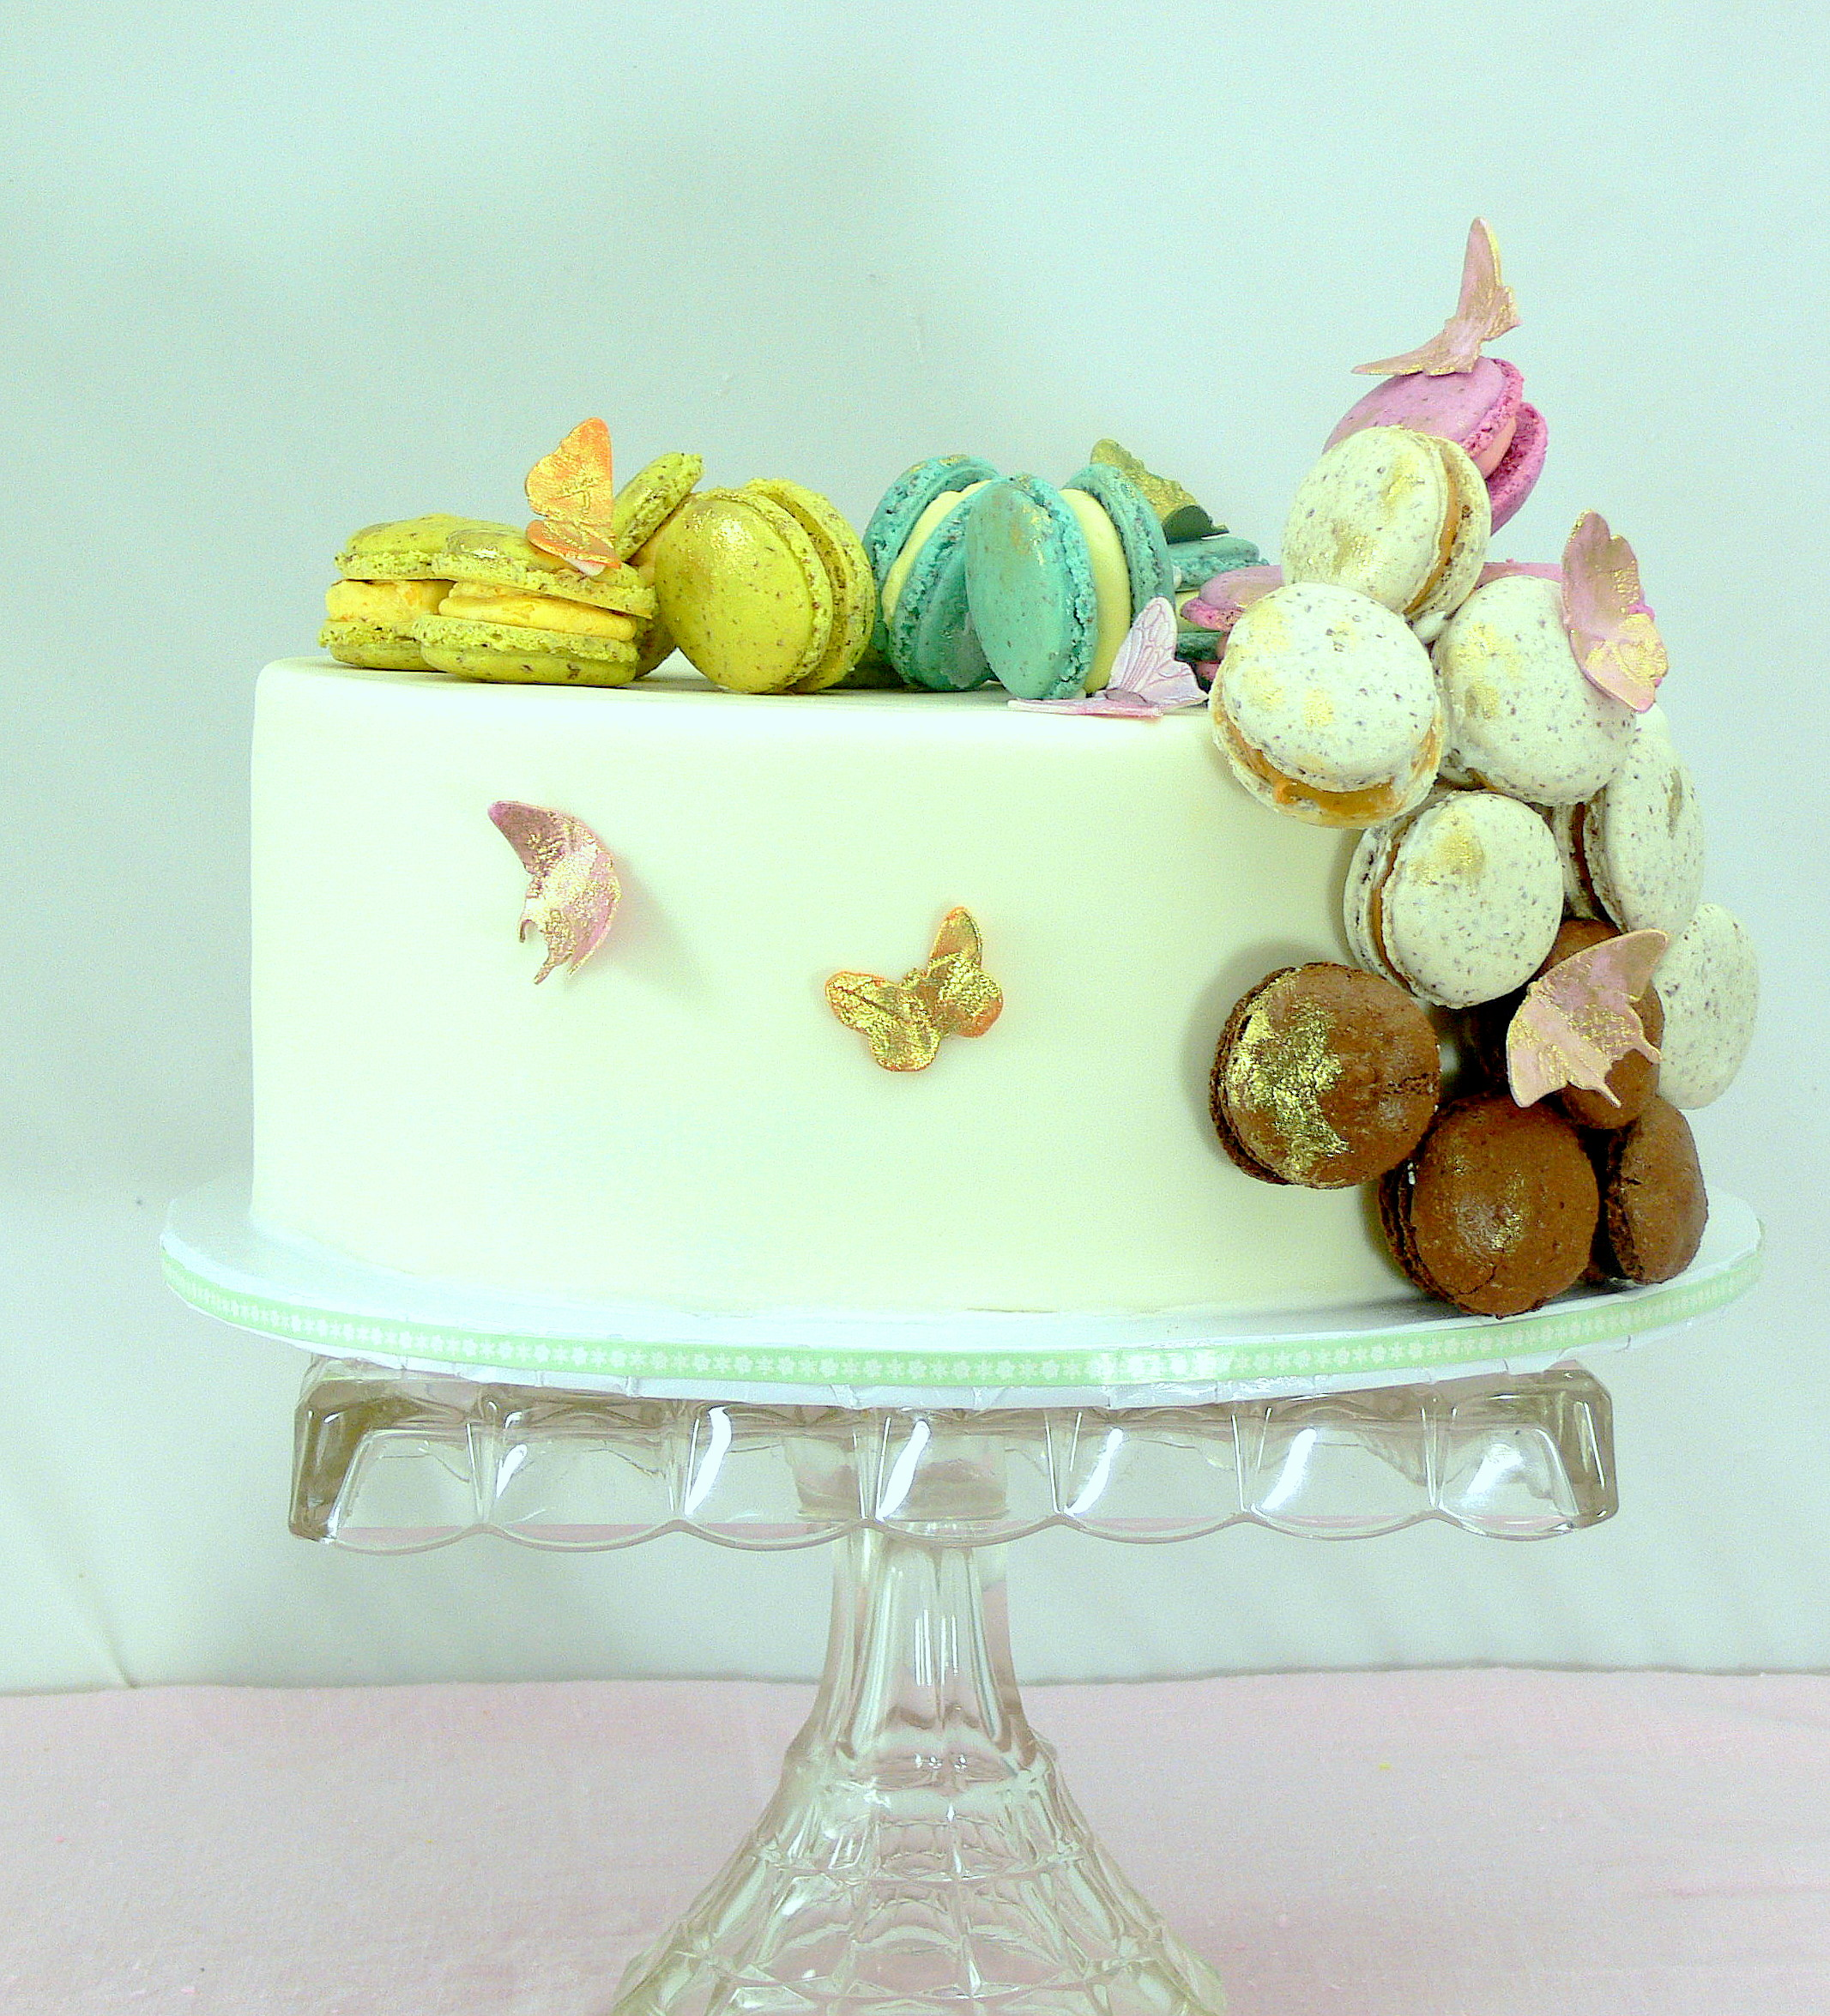 Flight of the macaron cake with butterflies.JPG